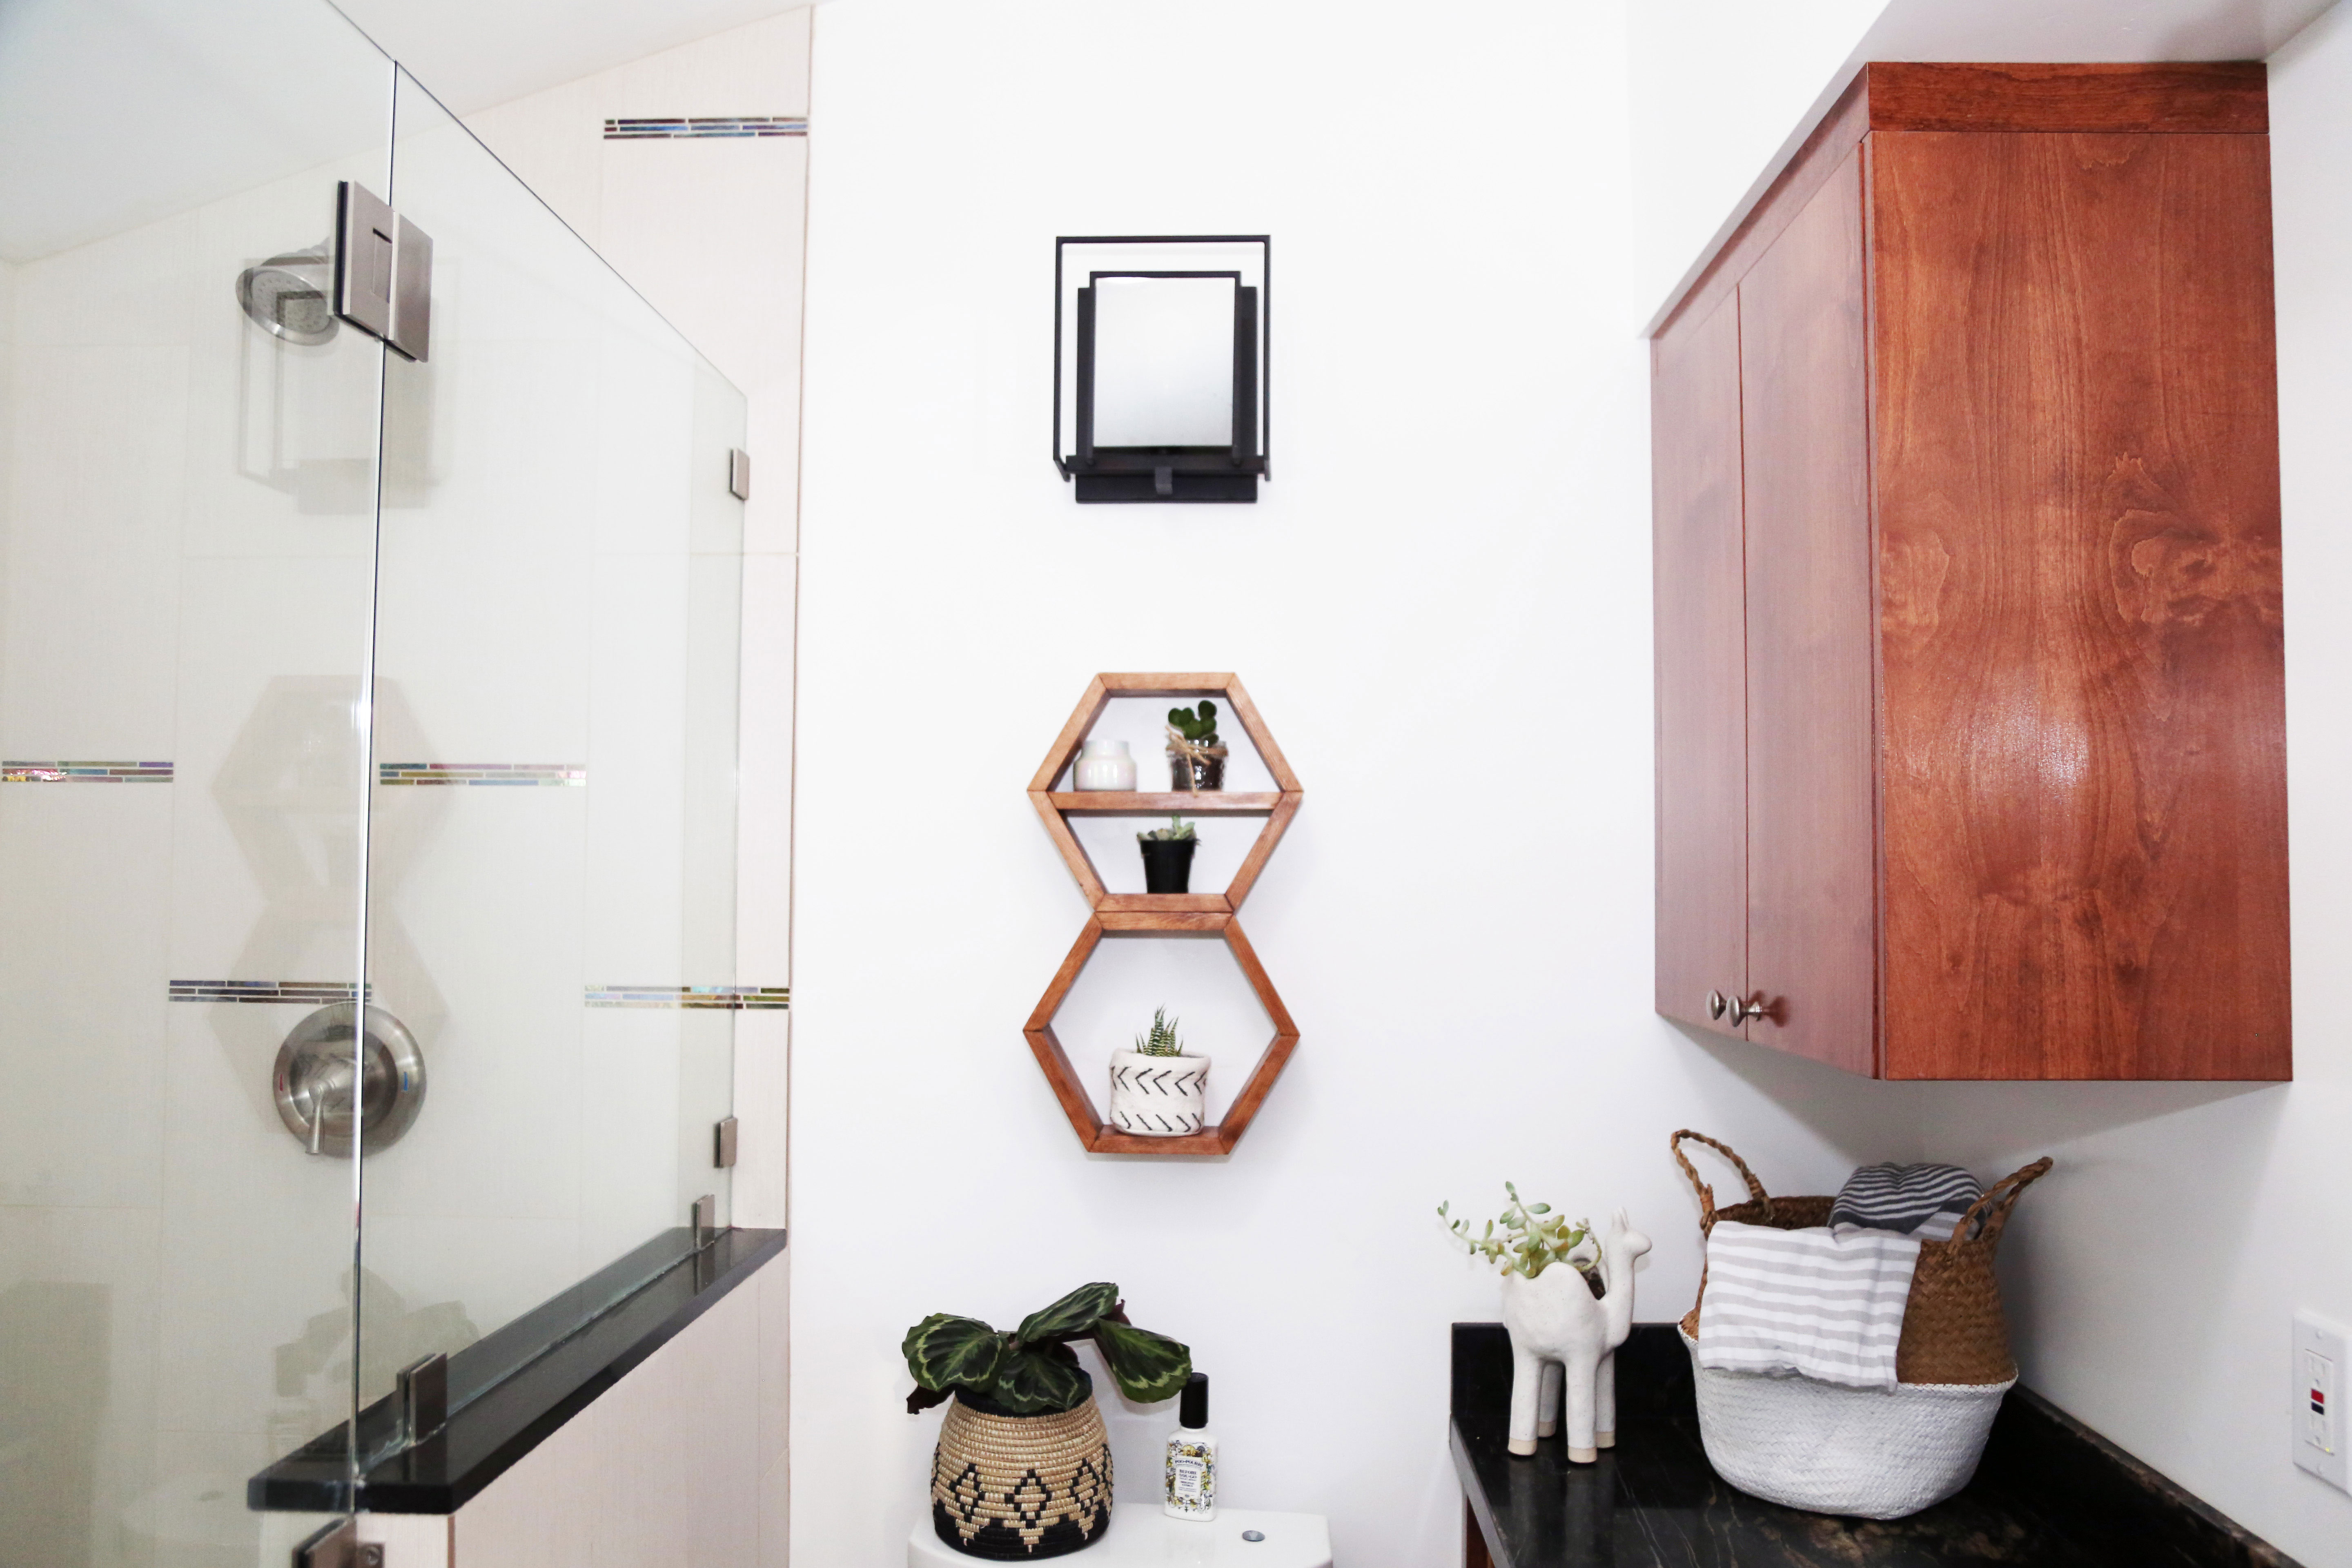 tiny house bathroom #sdsmallspaces